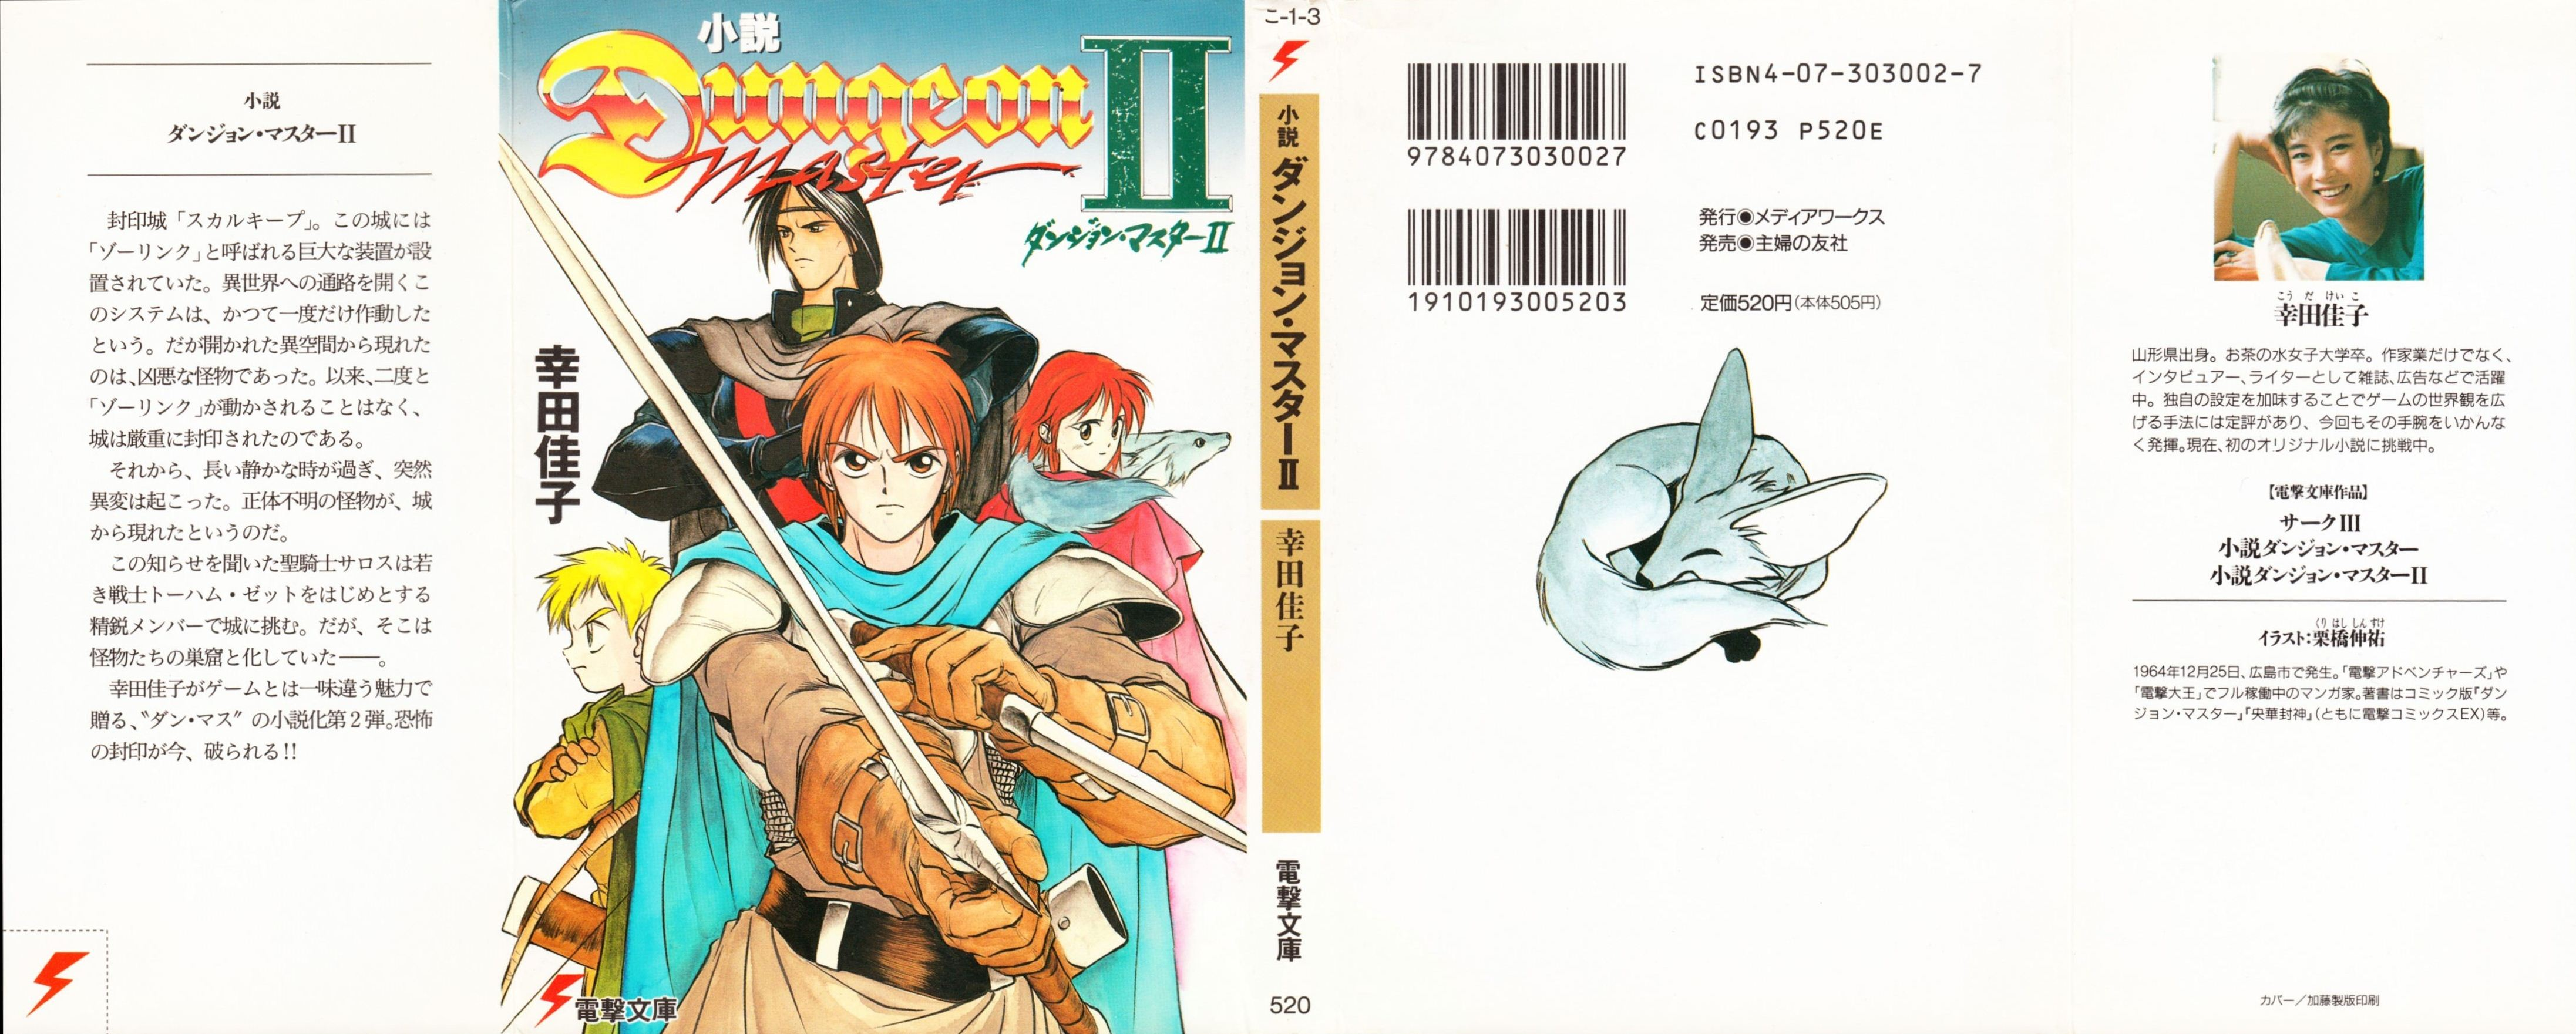 Novel - Dungeon Master II - JP - Dust Jacket - Front - Scan